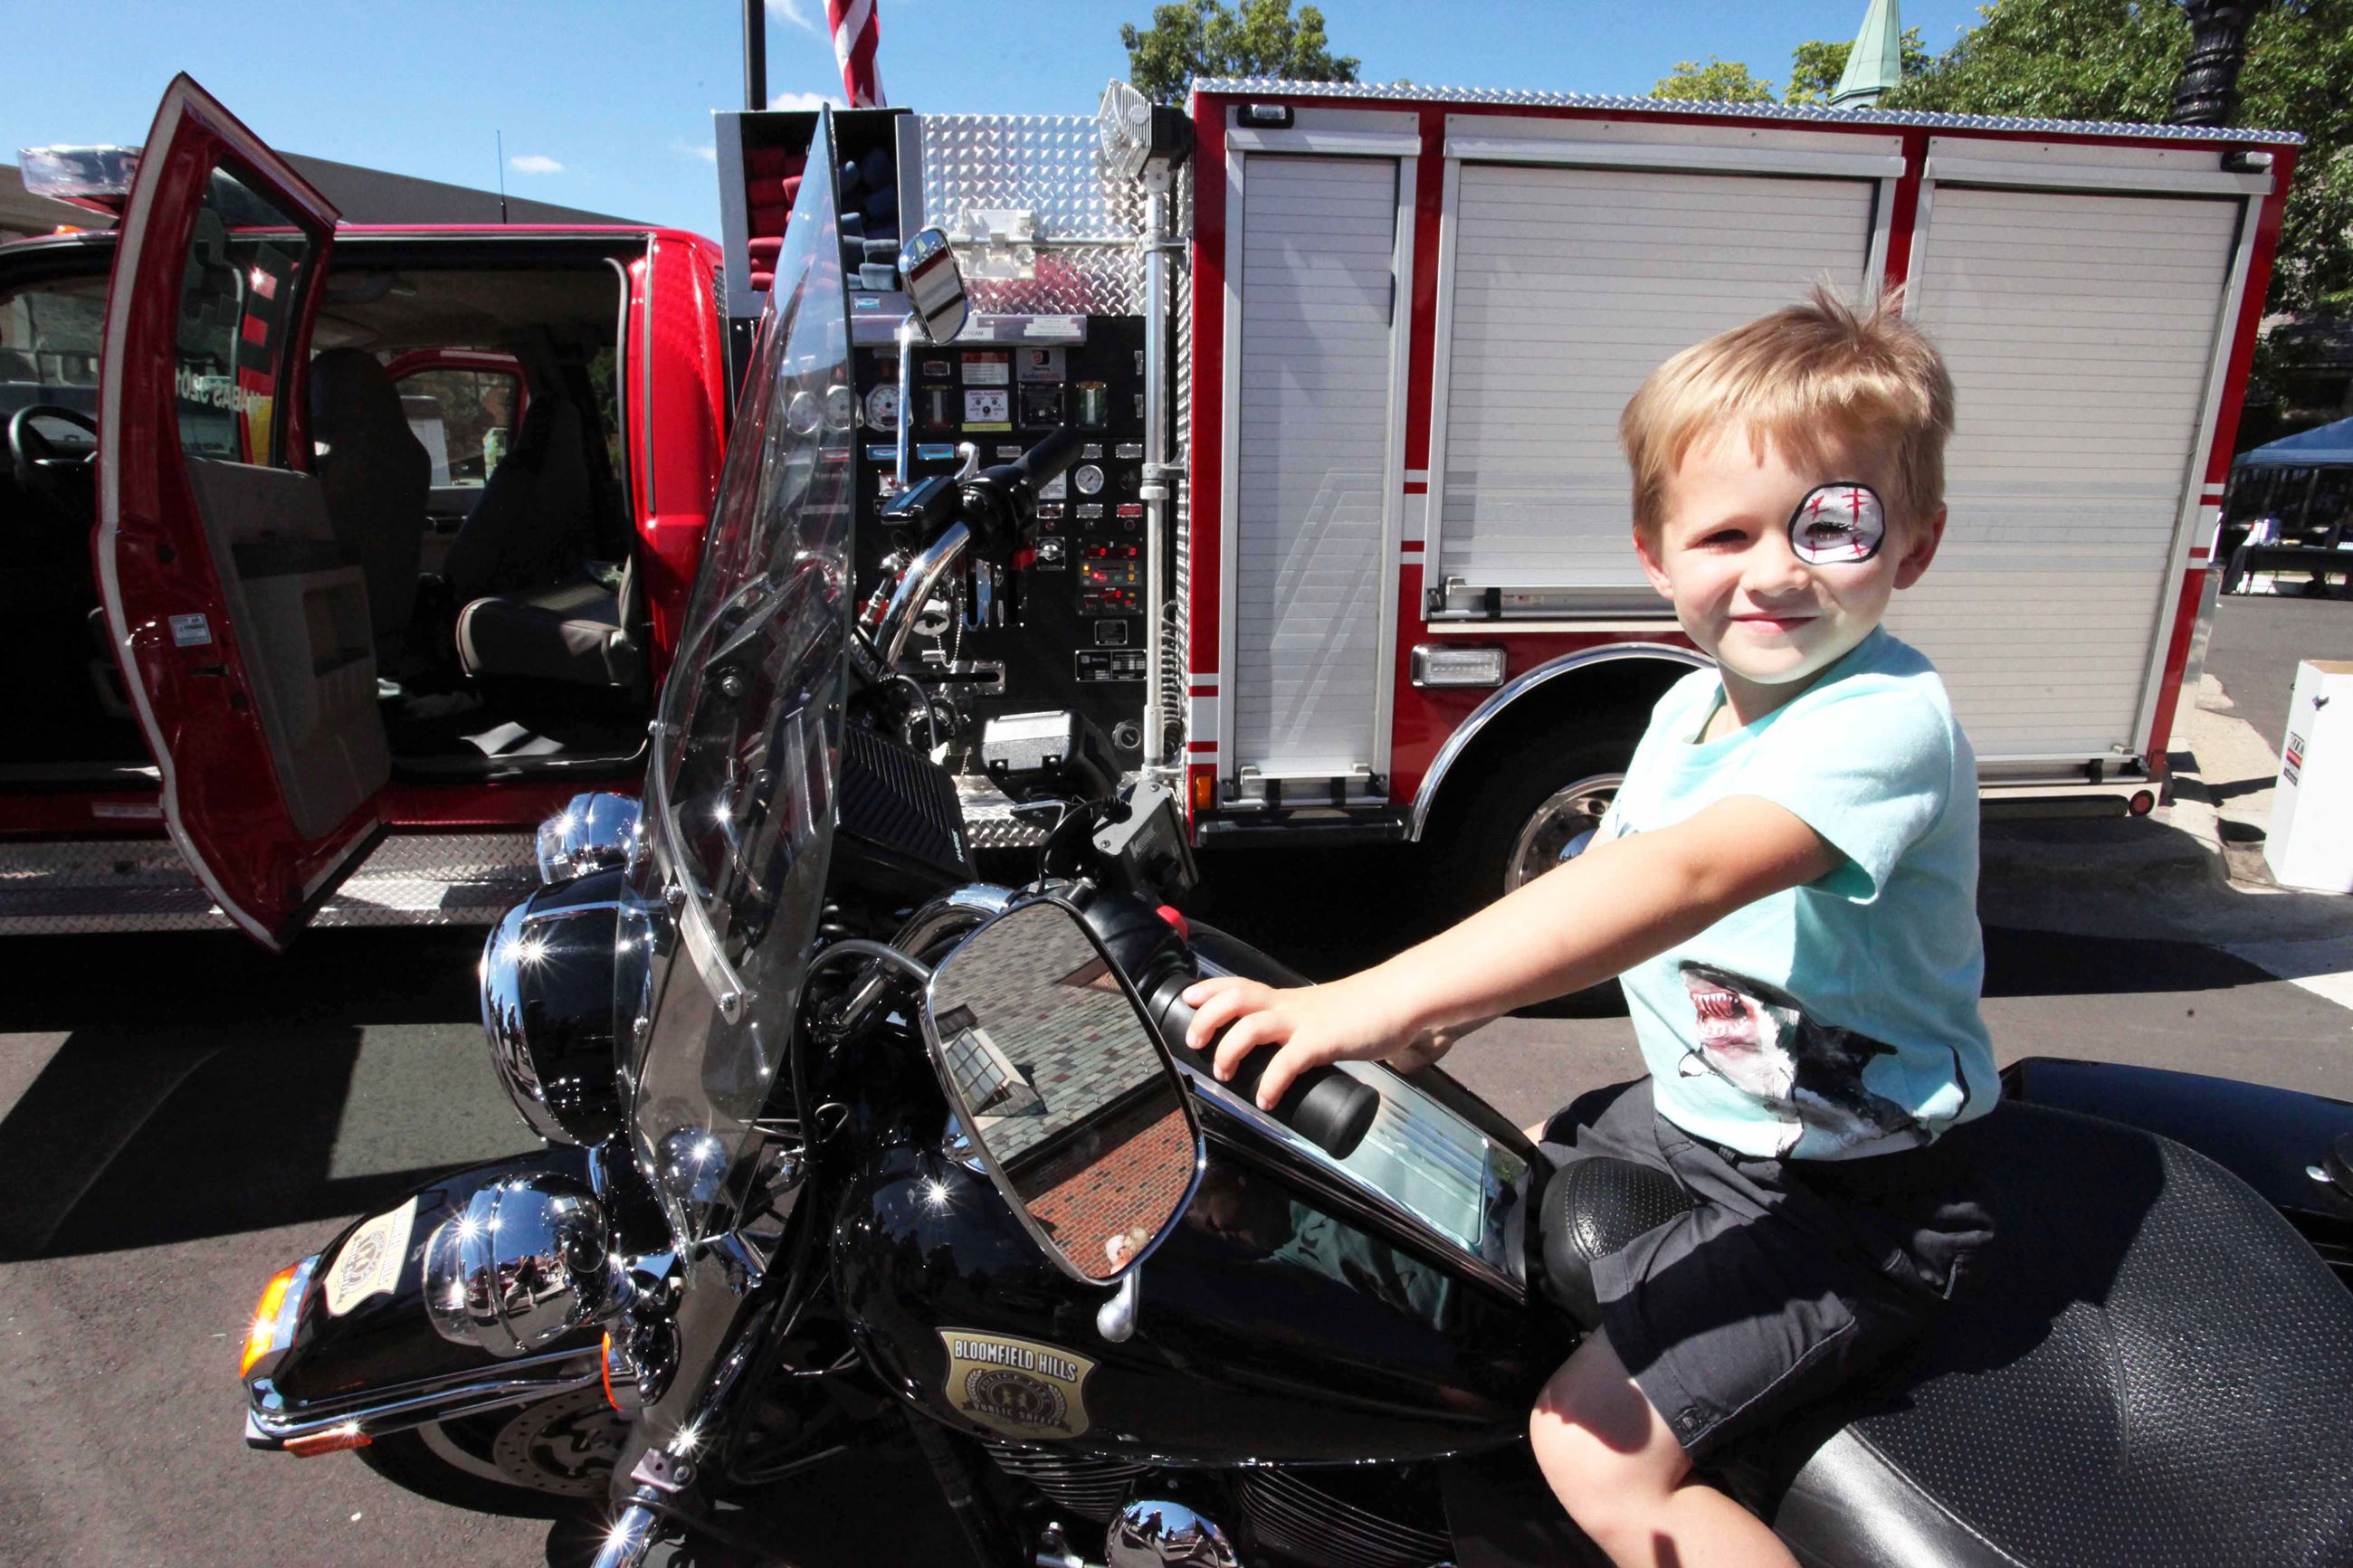 Little Boy on Police Motorcycle